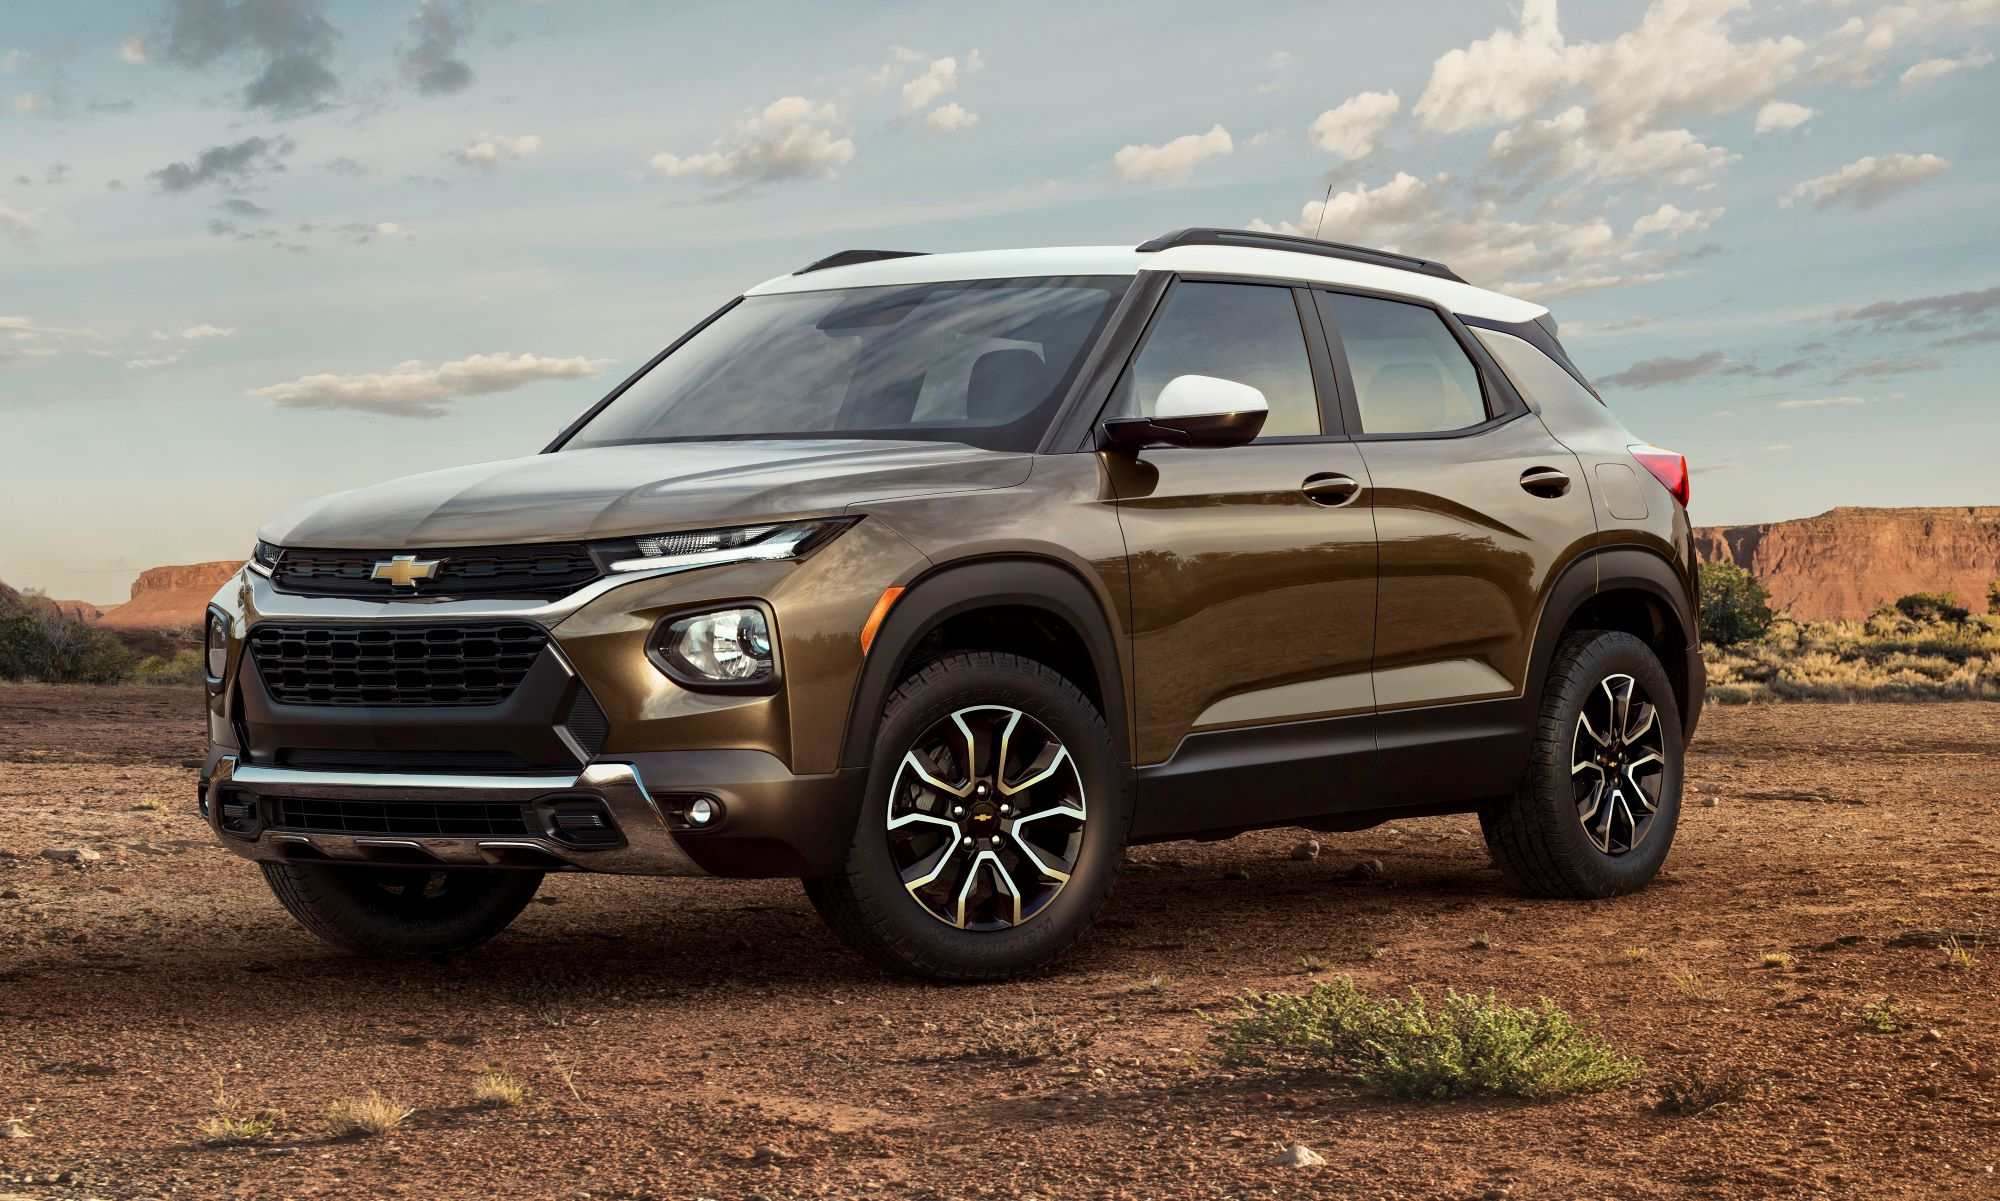 2021 Chevrolet Trailblazer Priced At Under $20K | Gm Authority Can A 2021 Chevy Blazer Be Flat Towed